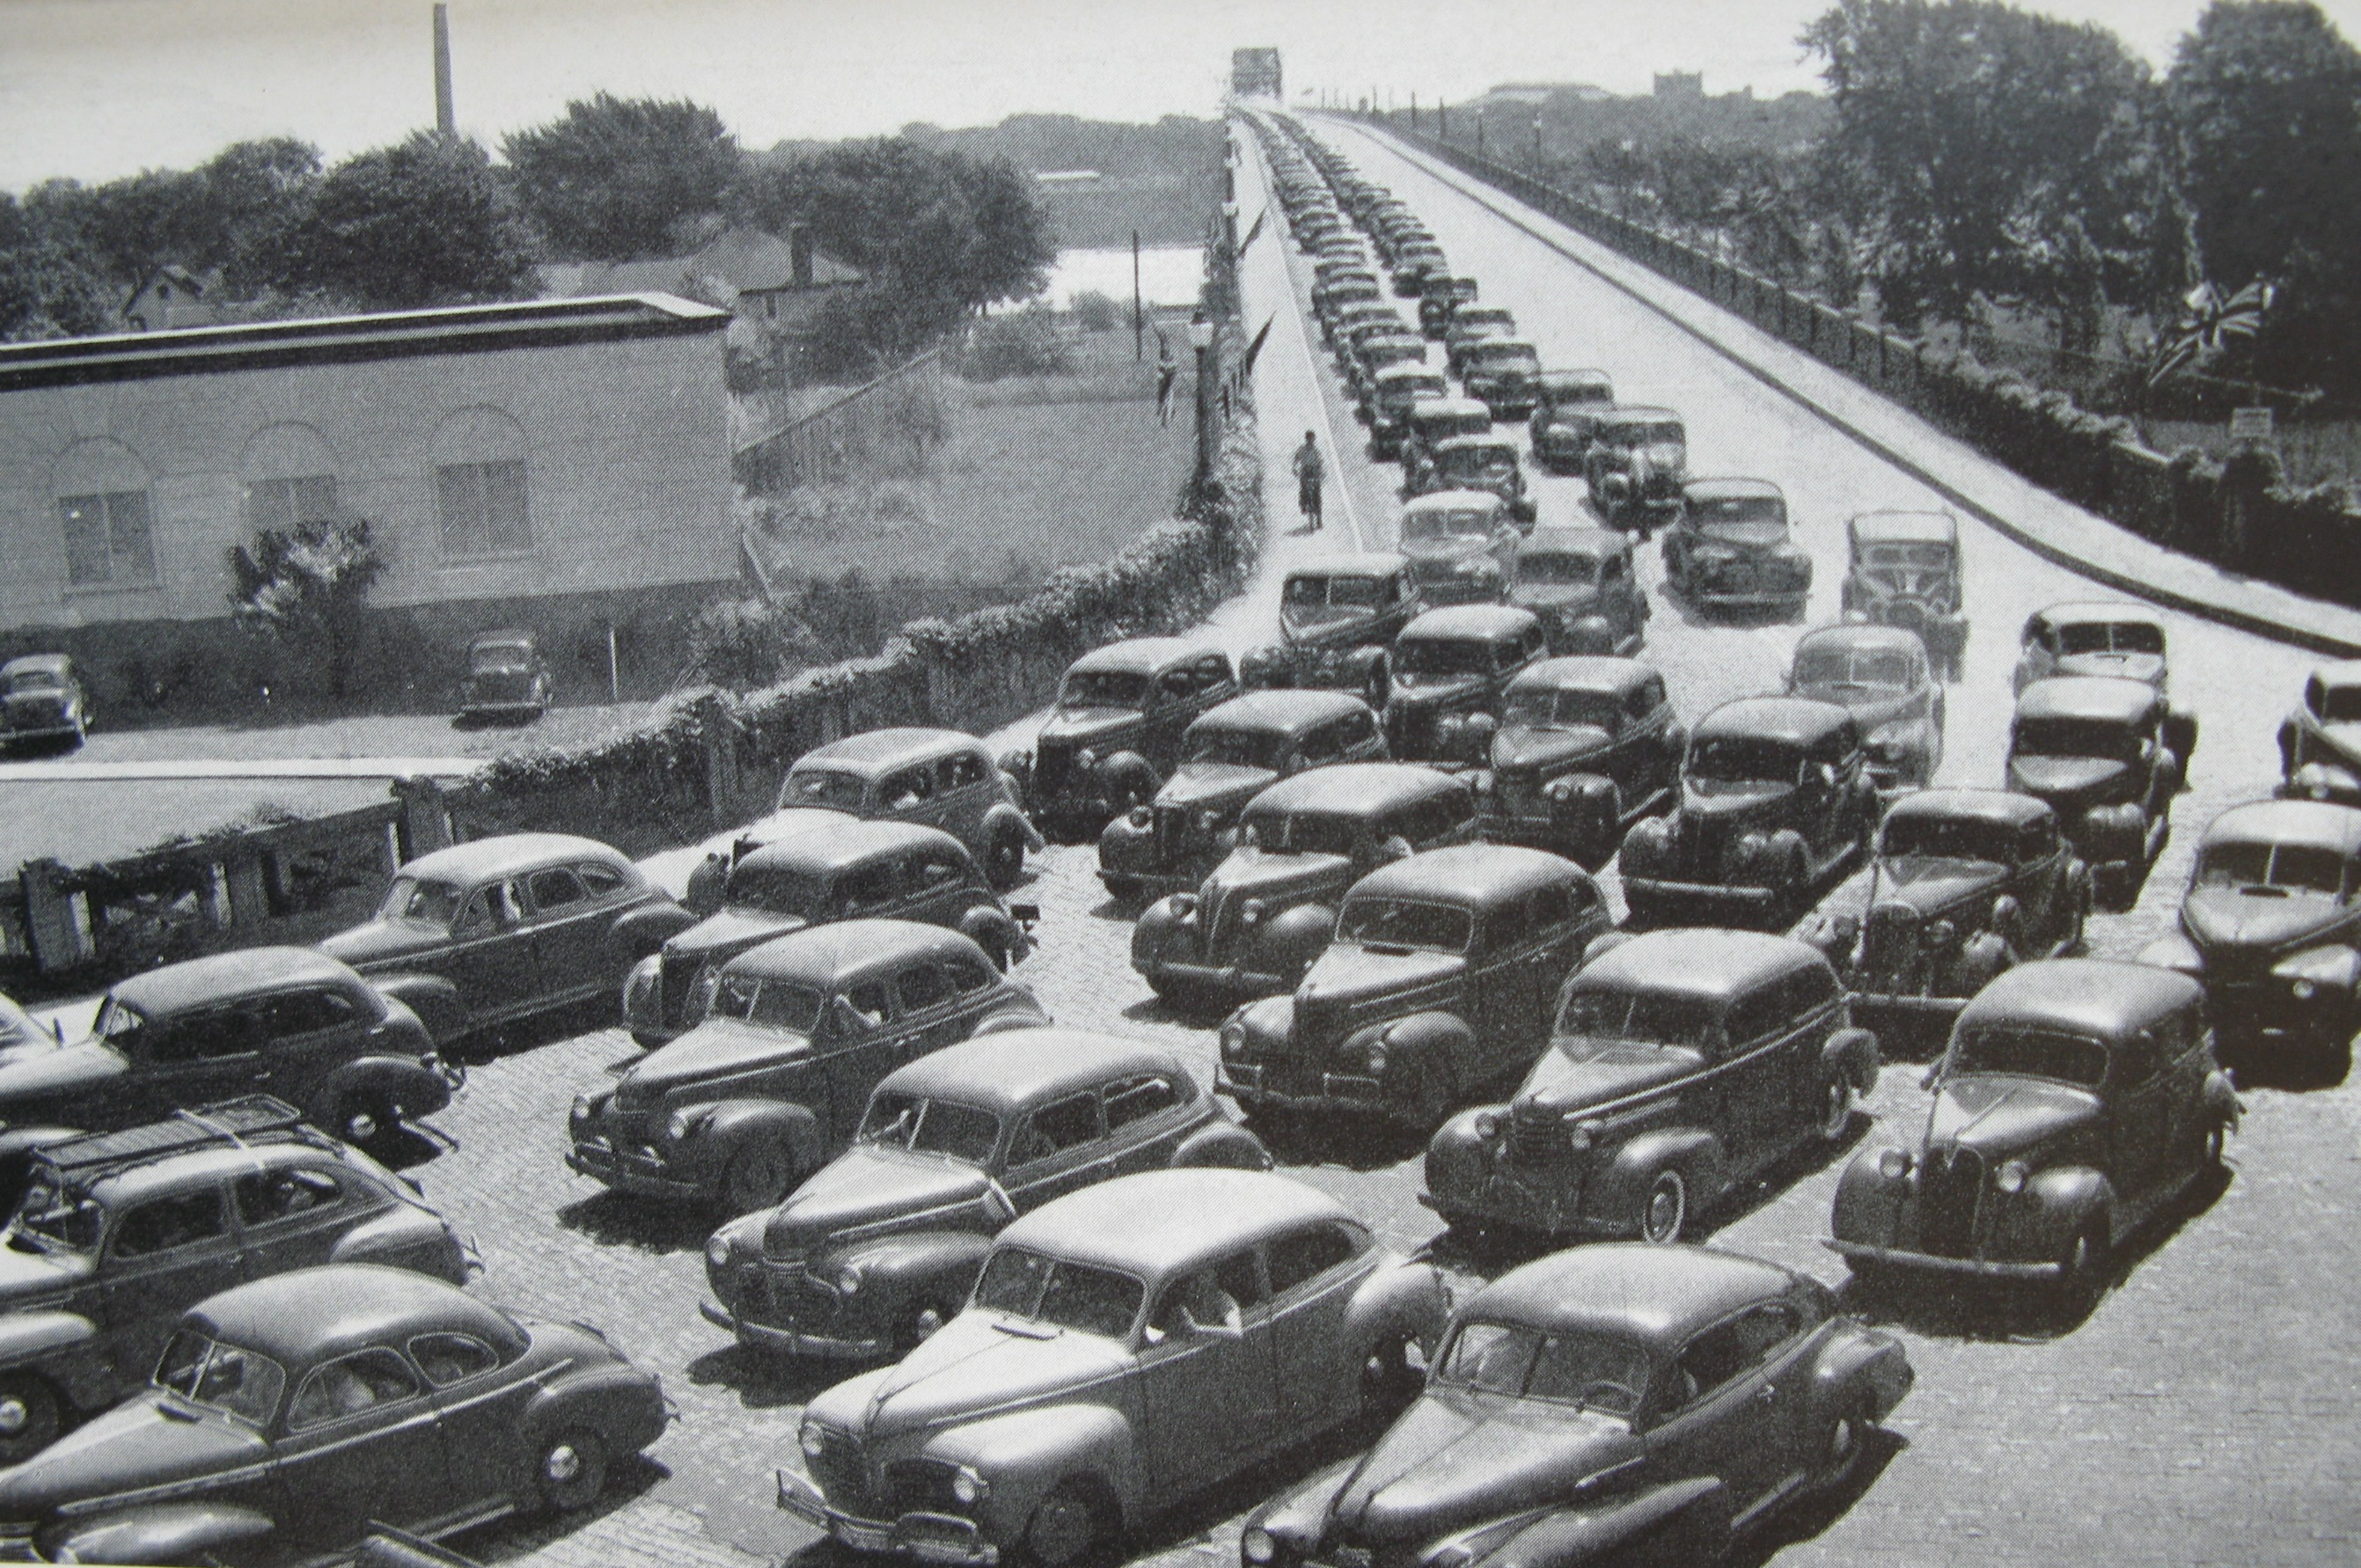 Automobiles en provenance des États-Unis sur le pont Peace à Fort Erié. Tiré de : Ontario, Annual Report of the Department of Highways of Ontario for the fiscal year ending March 31st 1946 (Toronto, Ont., 1946).